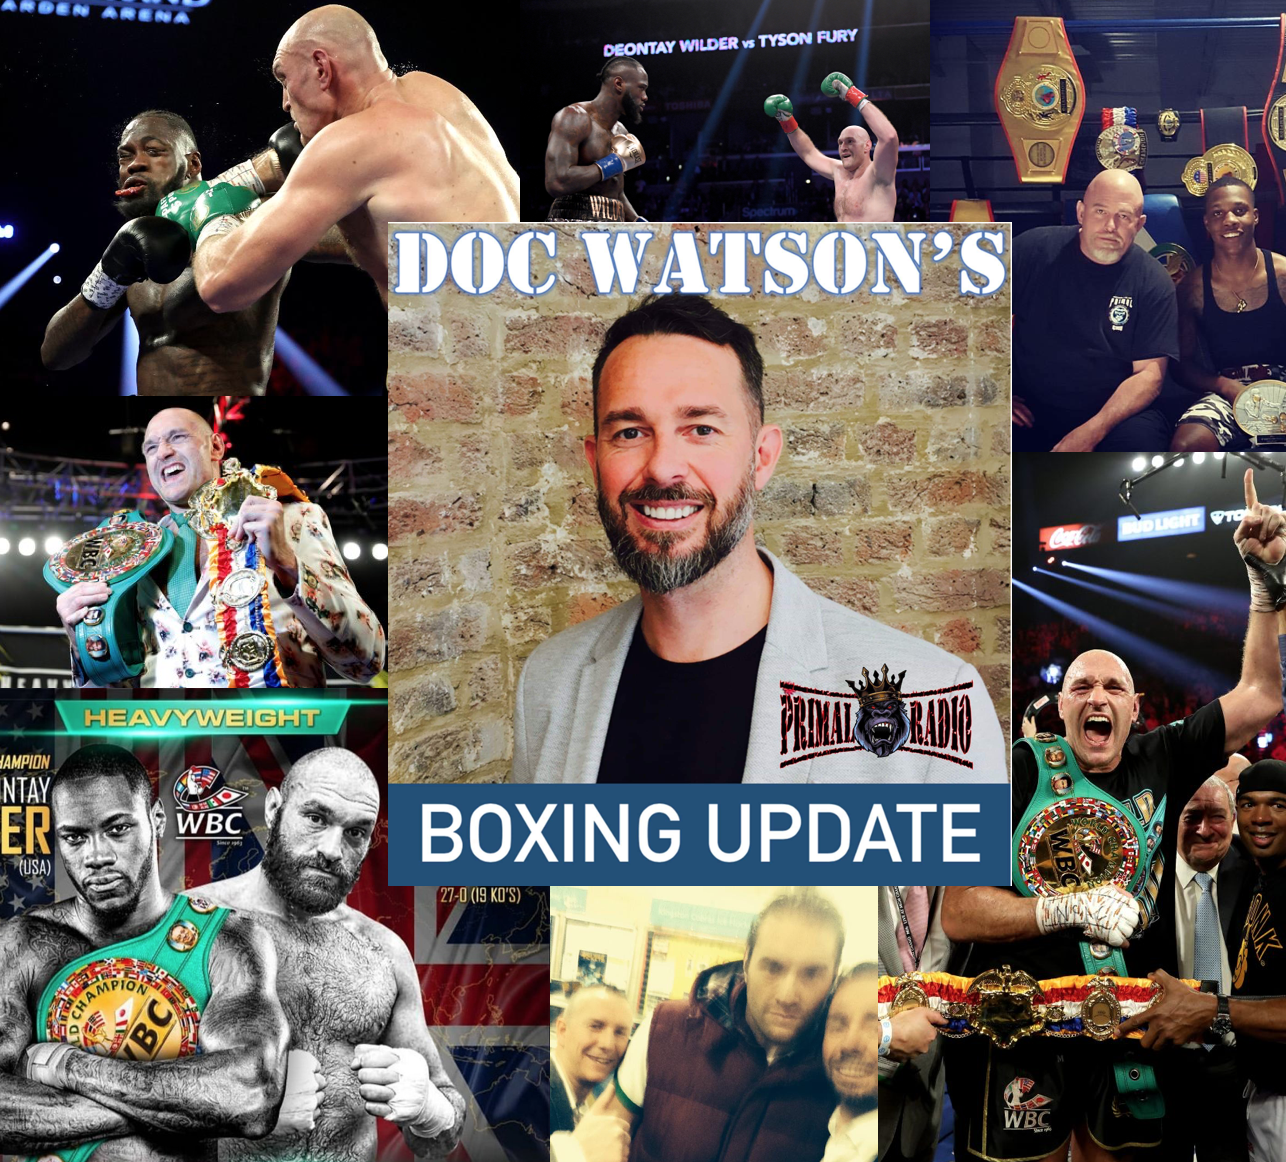 94: #94 Boxing Update - Wilder vs Fury 2 (the one without Doc Watson)